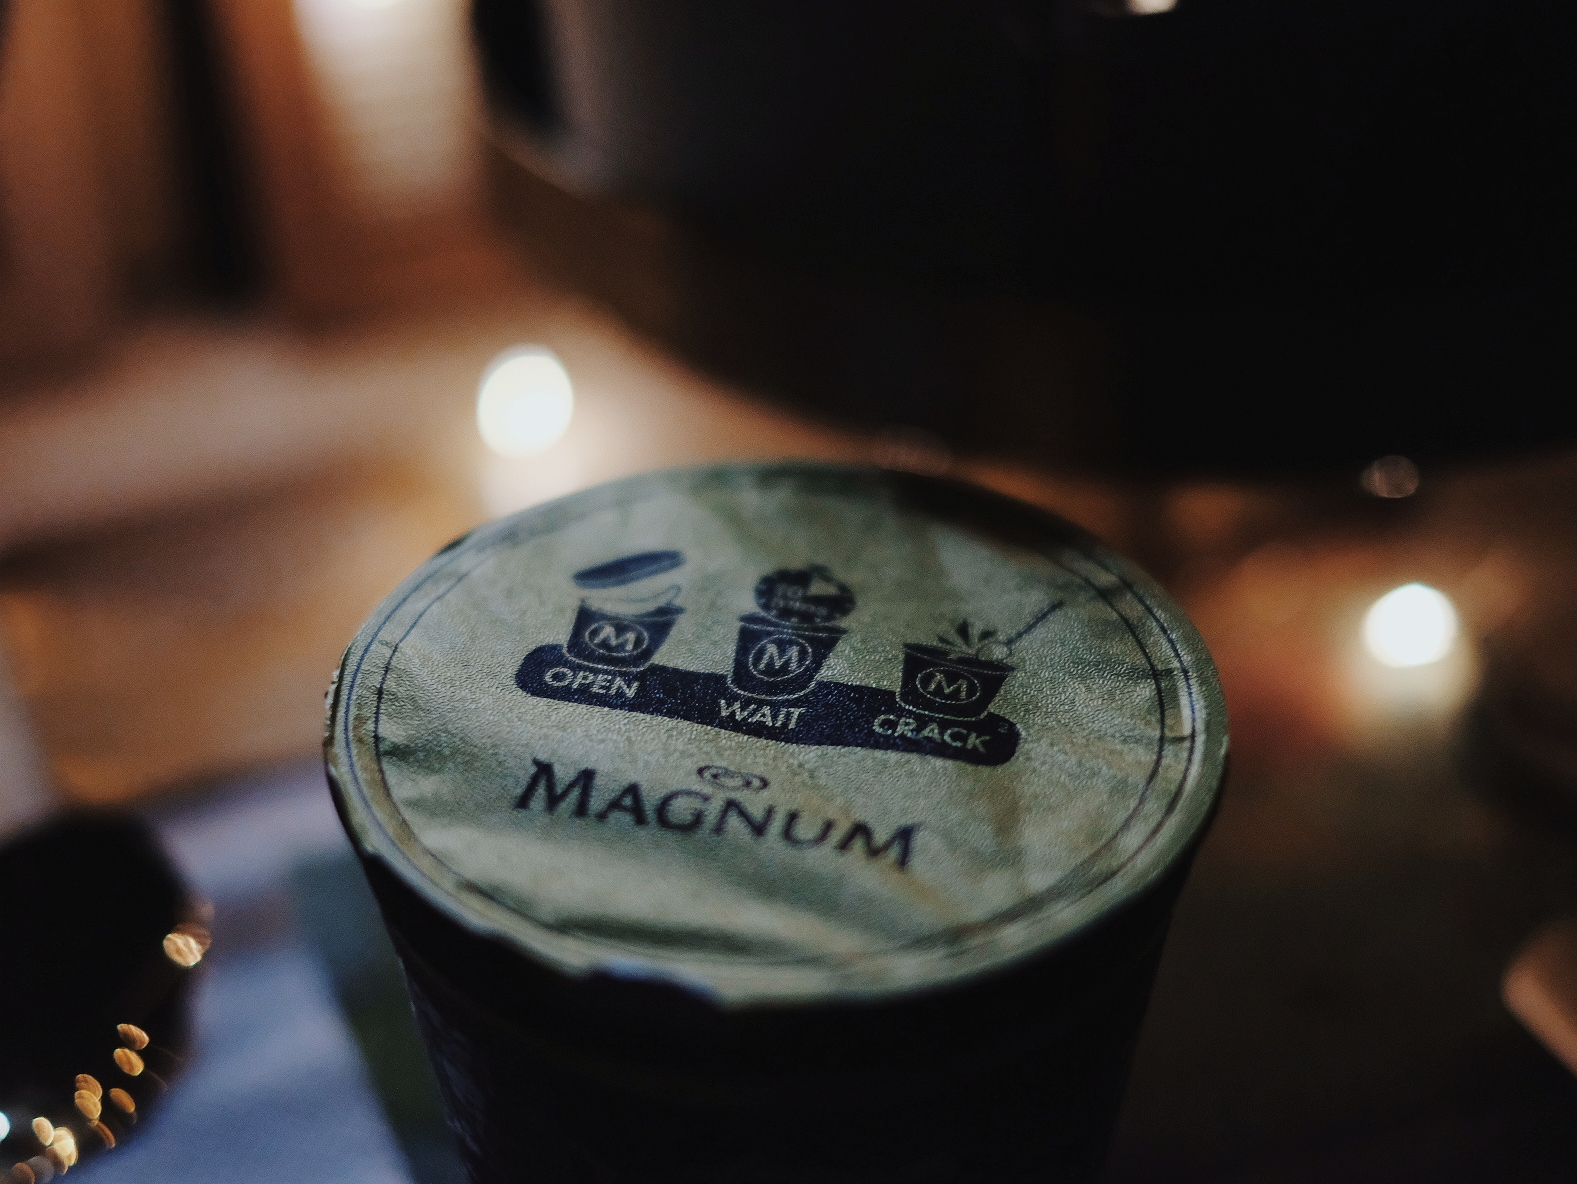 Ruth dela Cruz Magnum Pints Philippine Price Flavor